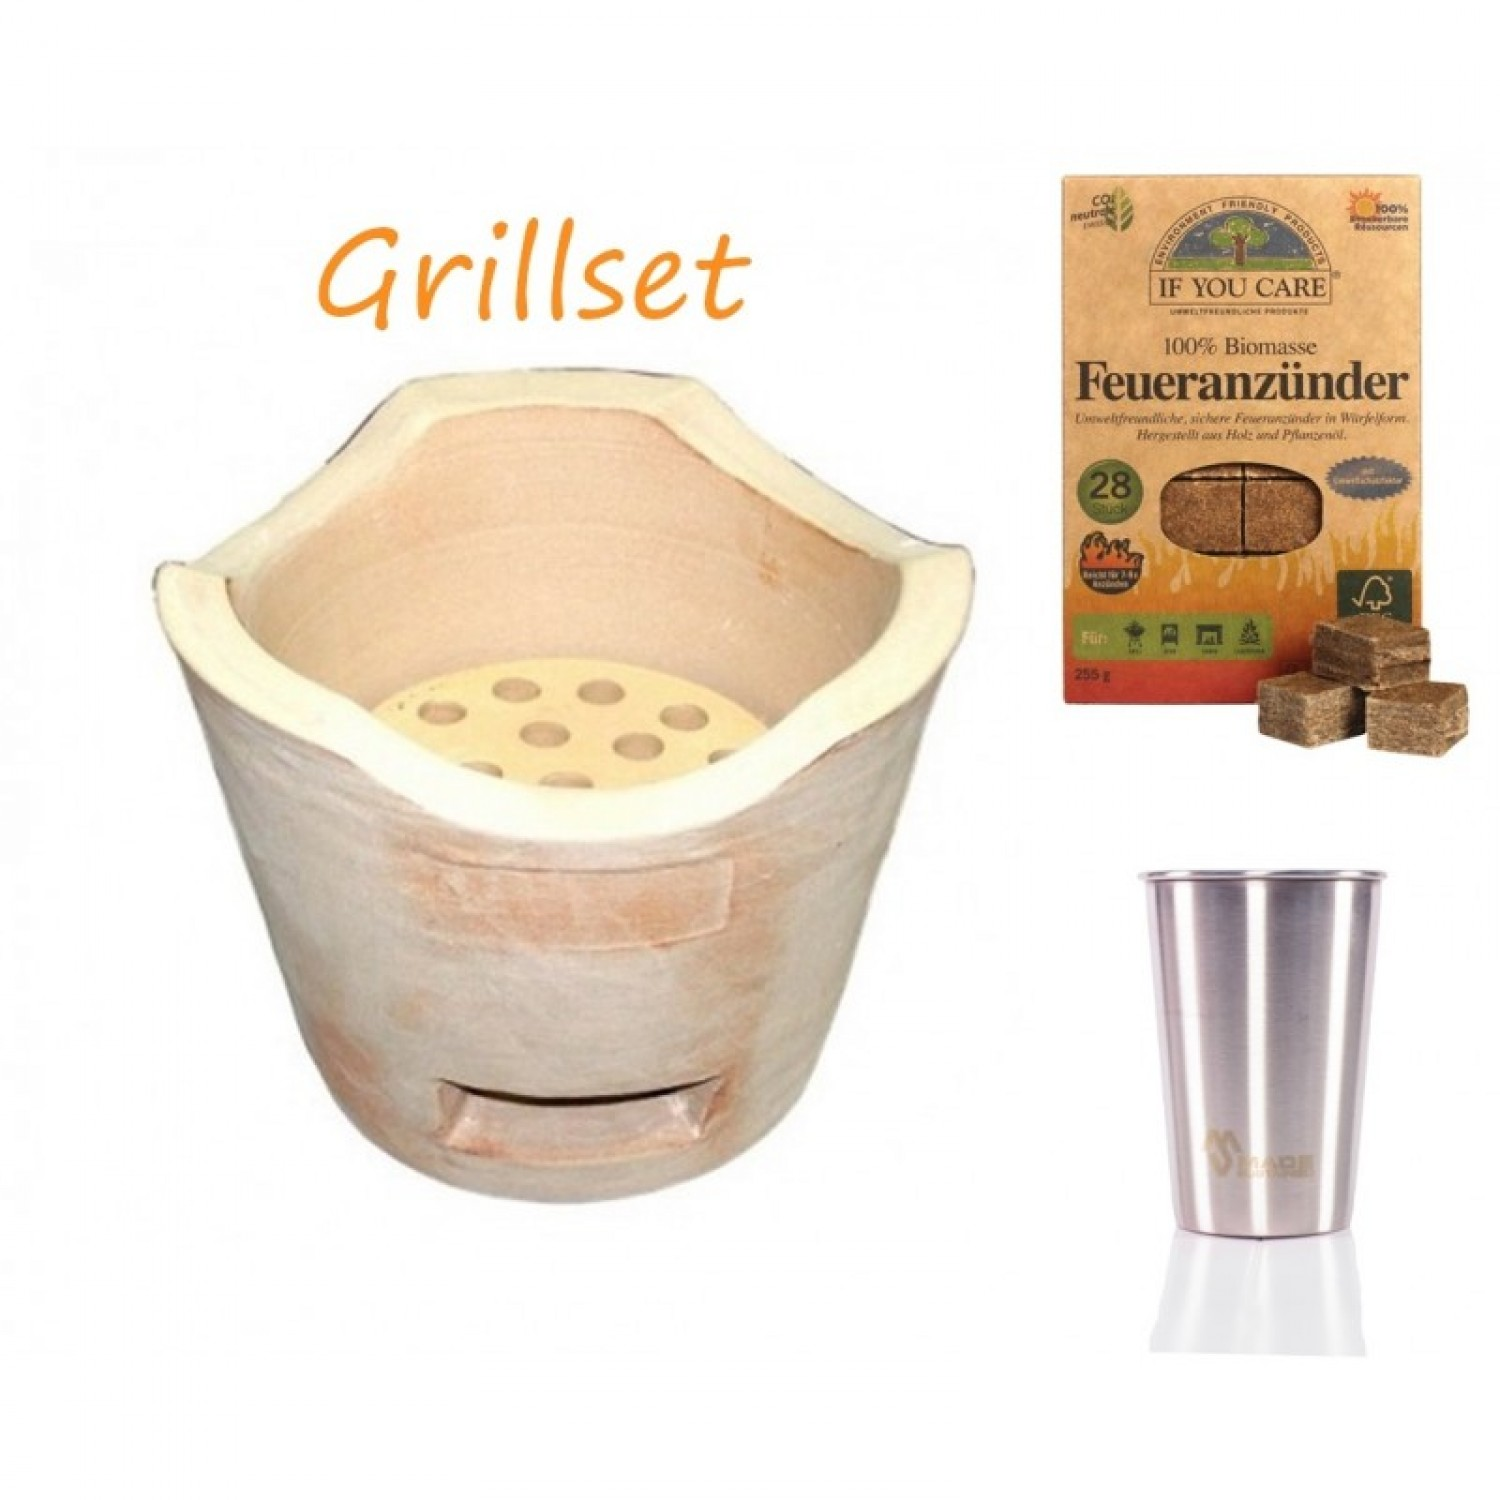 Thai Barbeque Grill Set with Firelighters and Stainless Steel Cup